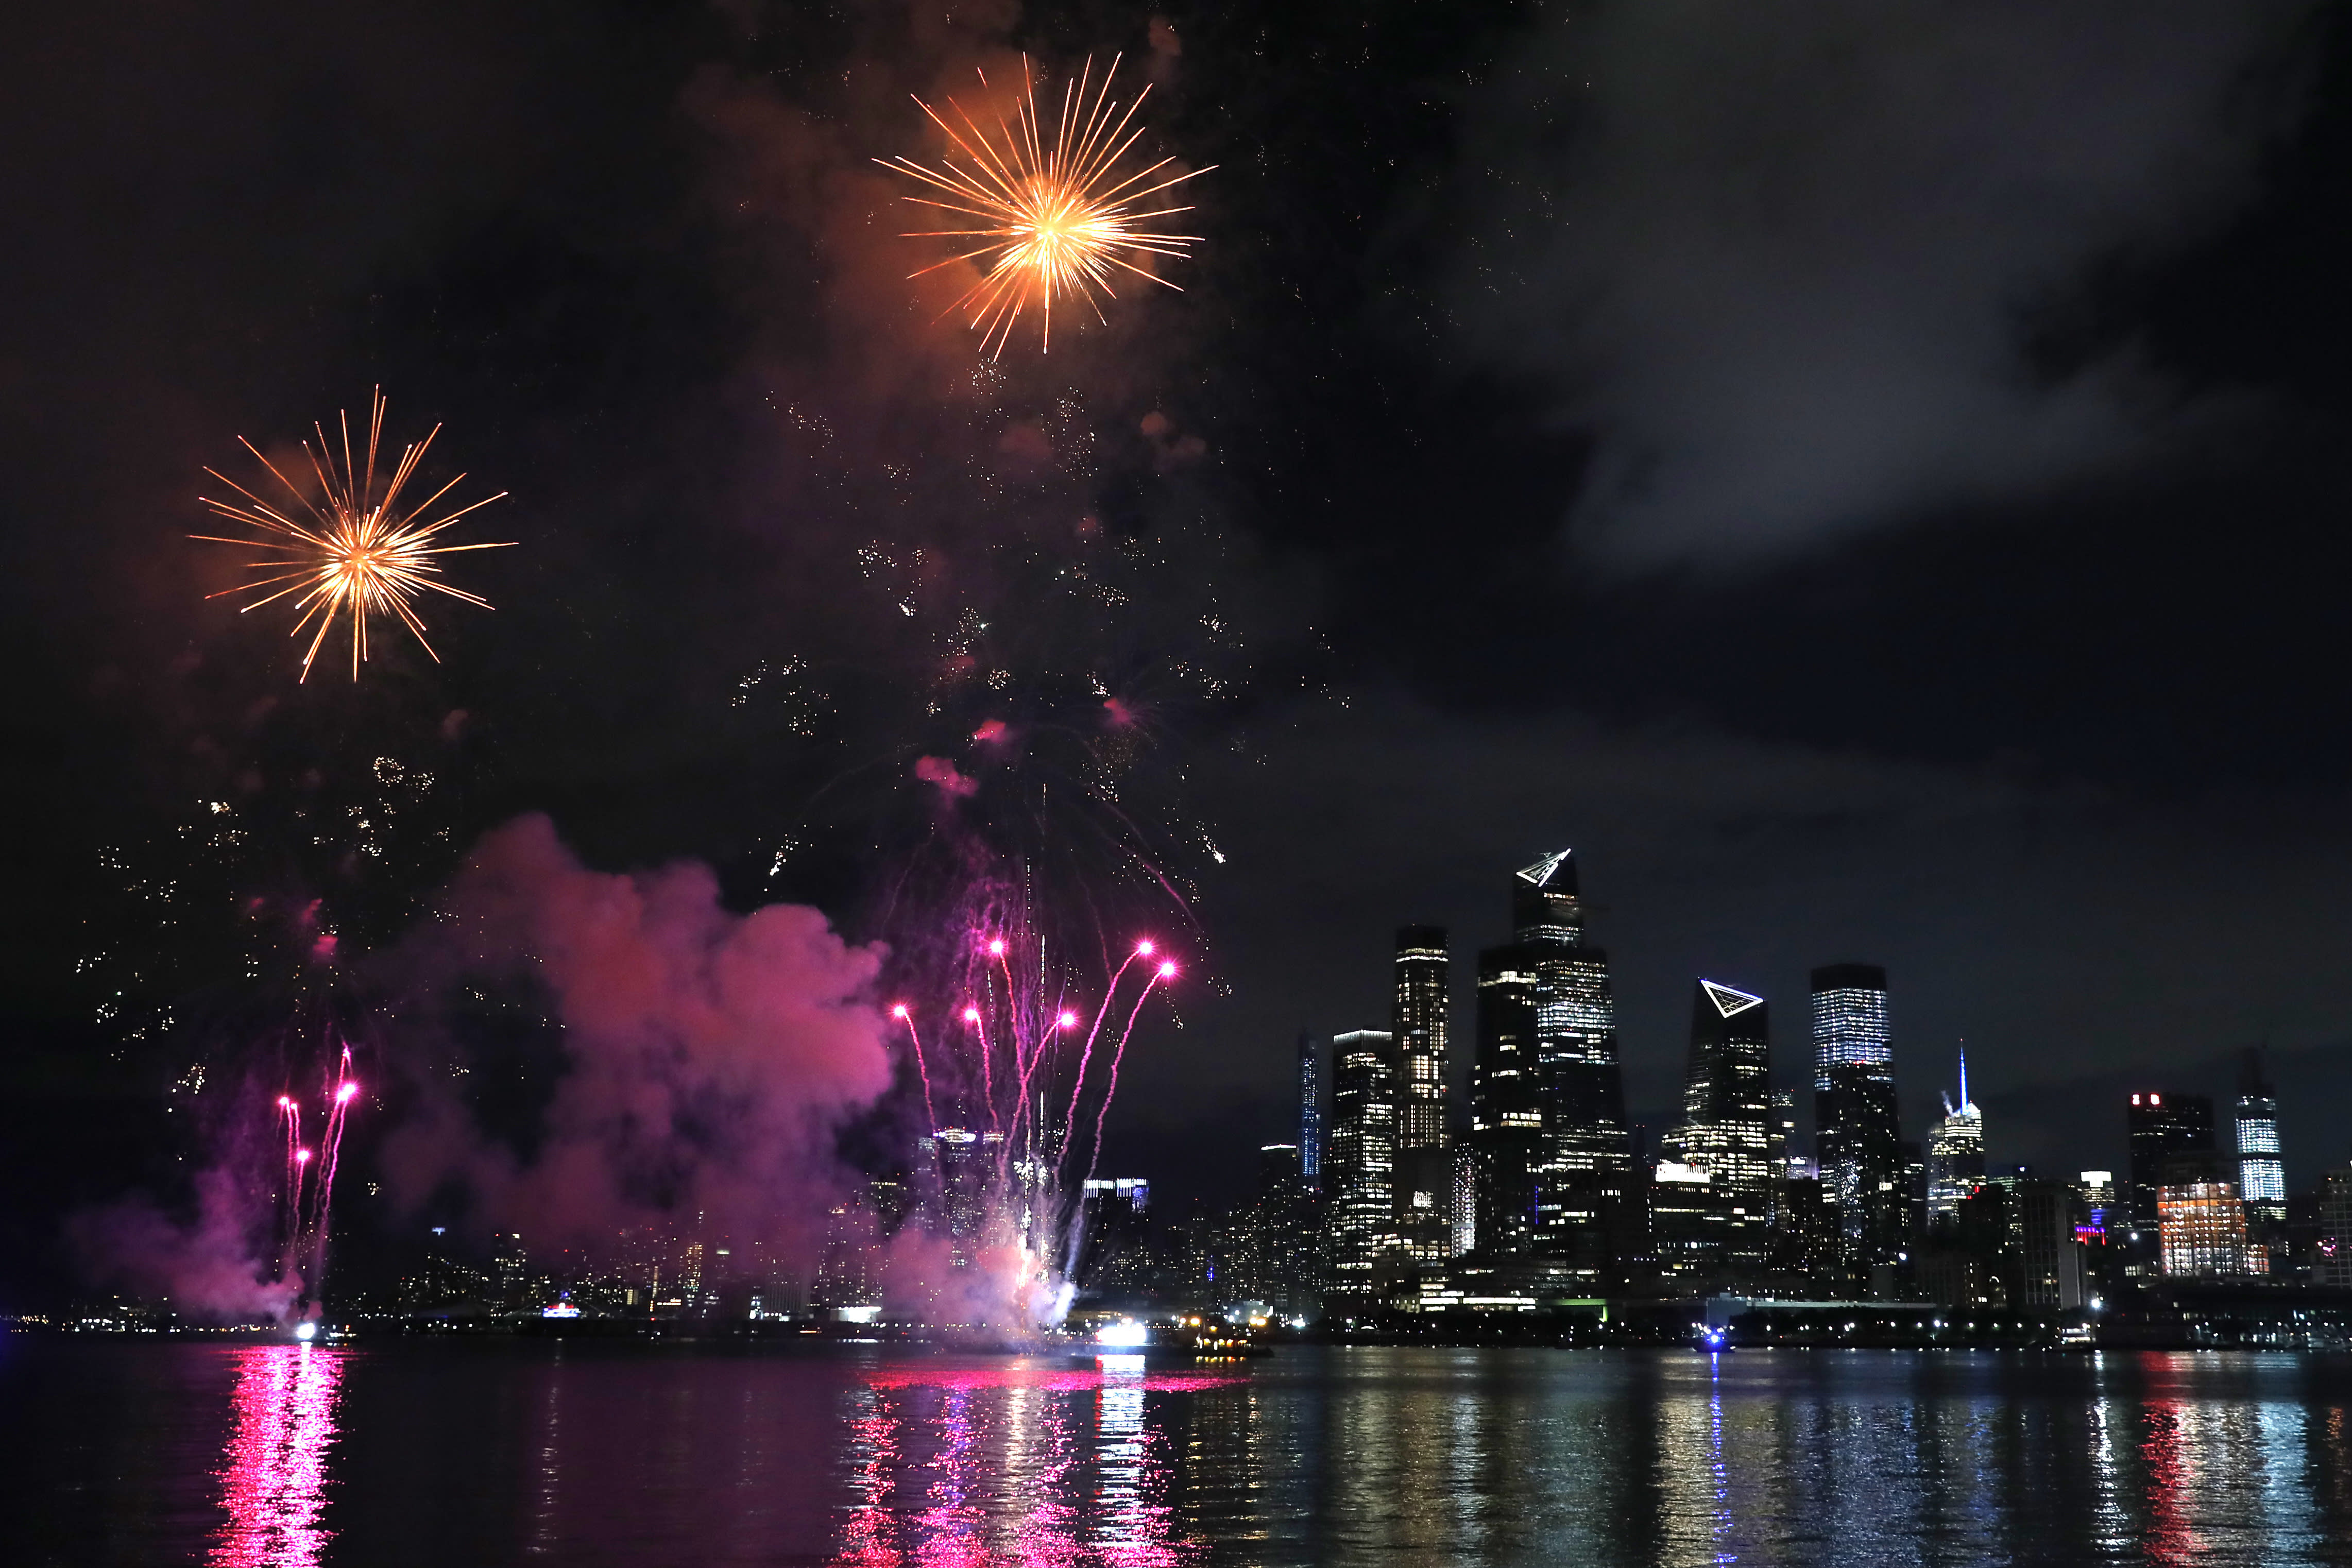 A surprise display of fireworks sponsored by Macy's explode over the Hudson Yards area of Manhattan as seen from a pier in Hoboken, N.J., late Tuesday, June 30, 2020. The fireworks were not announced until an hour or so before to avoid attracting large crowds. (AP Photo/Kathy Willens)